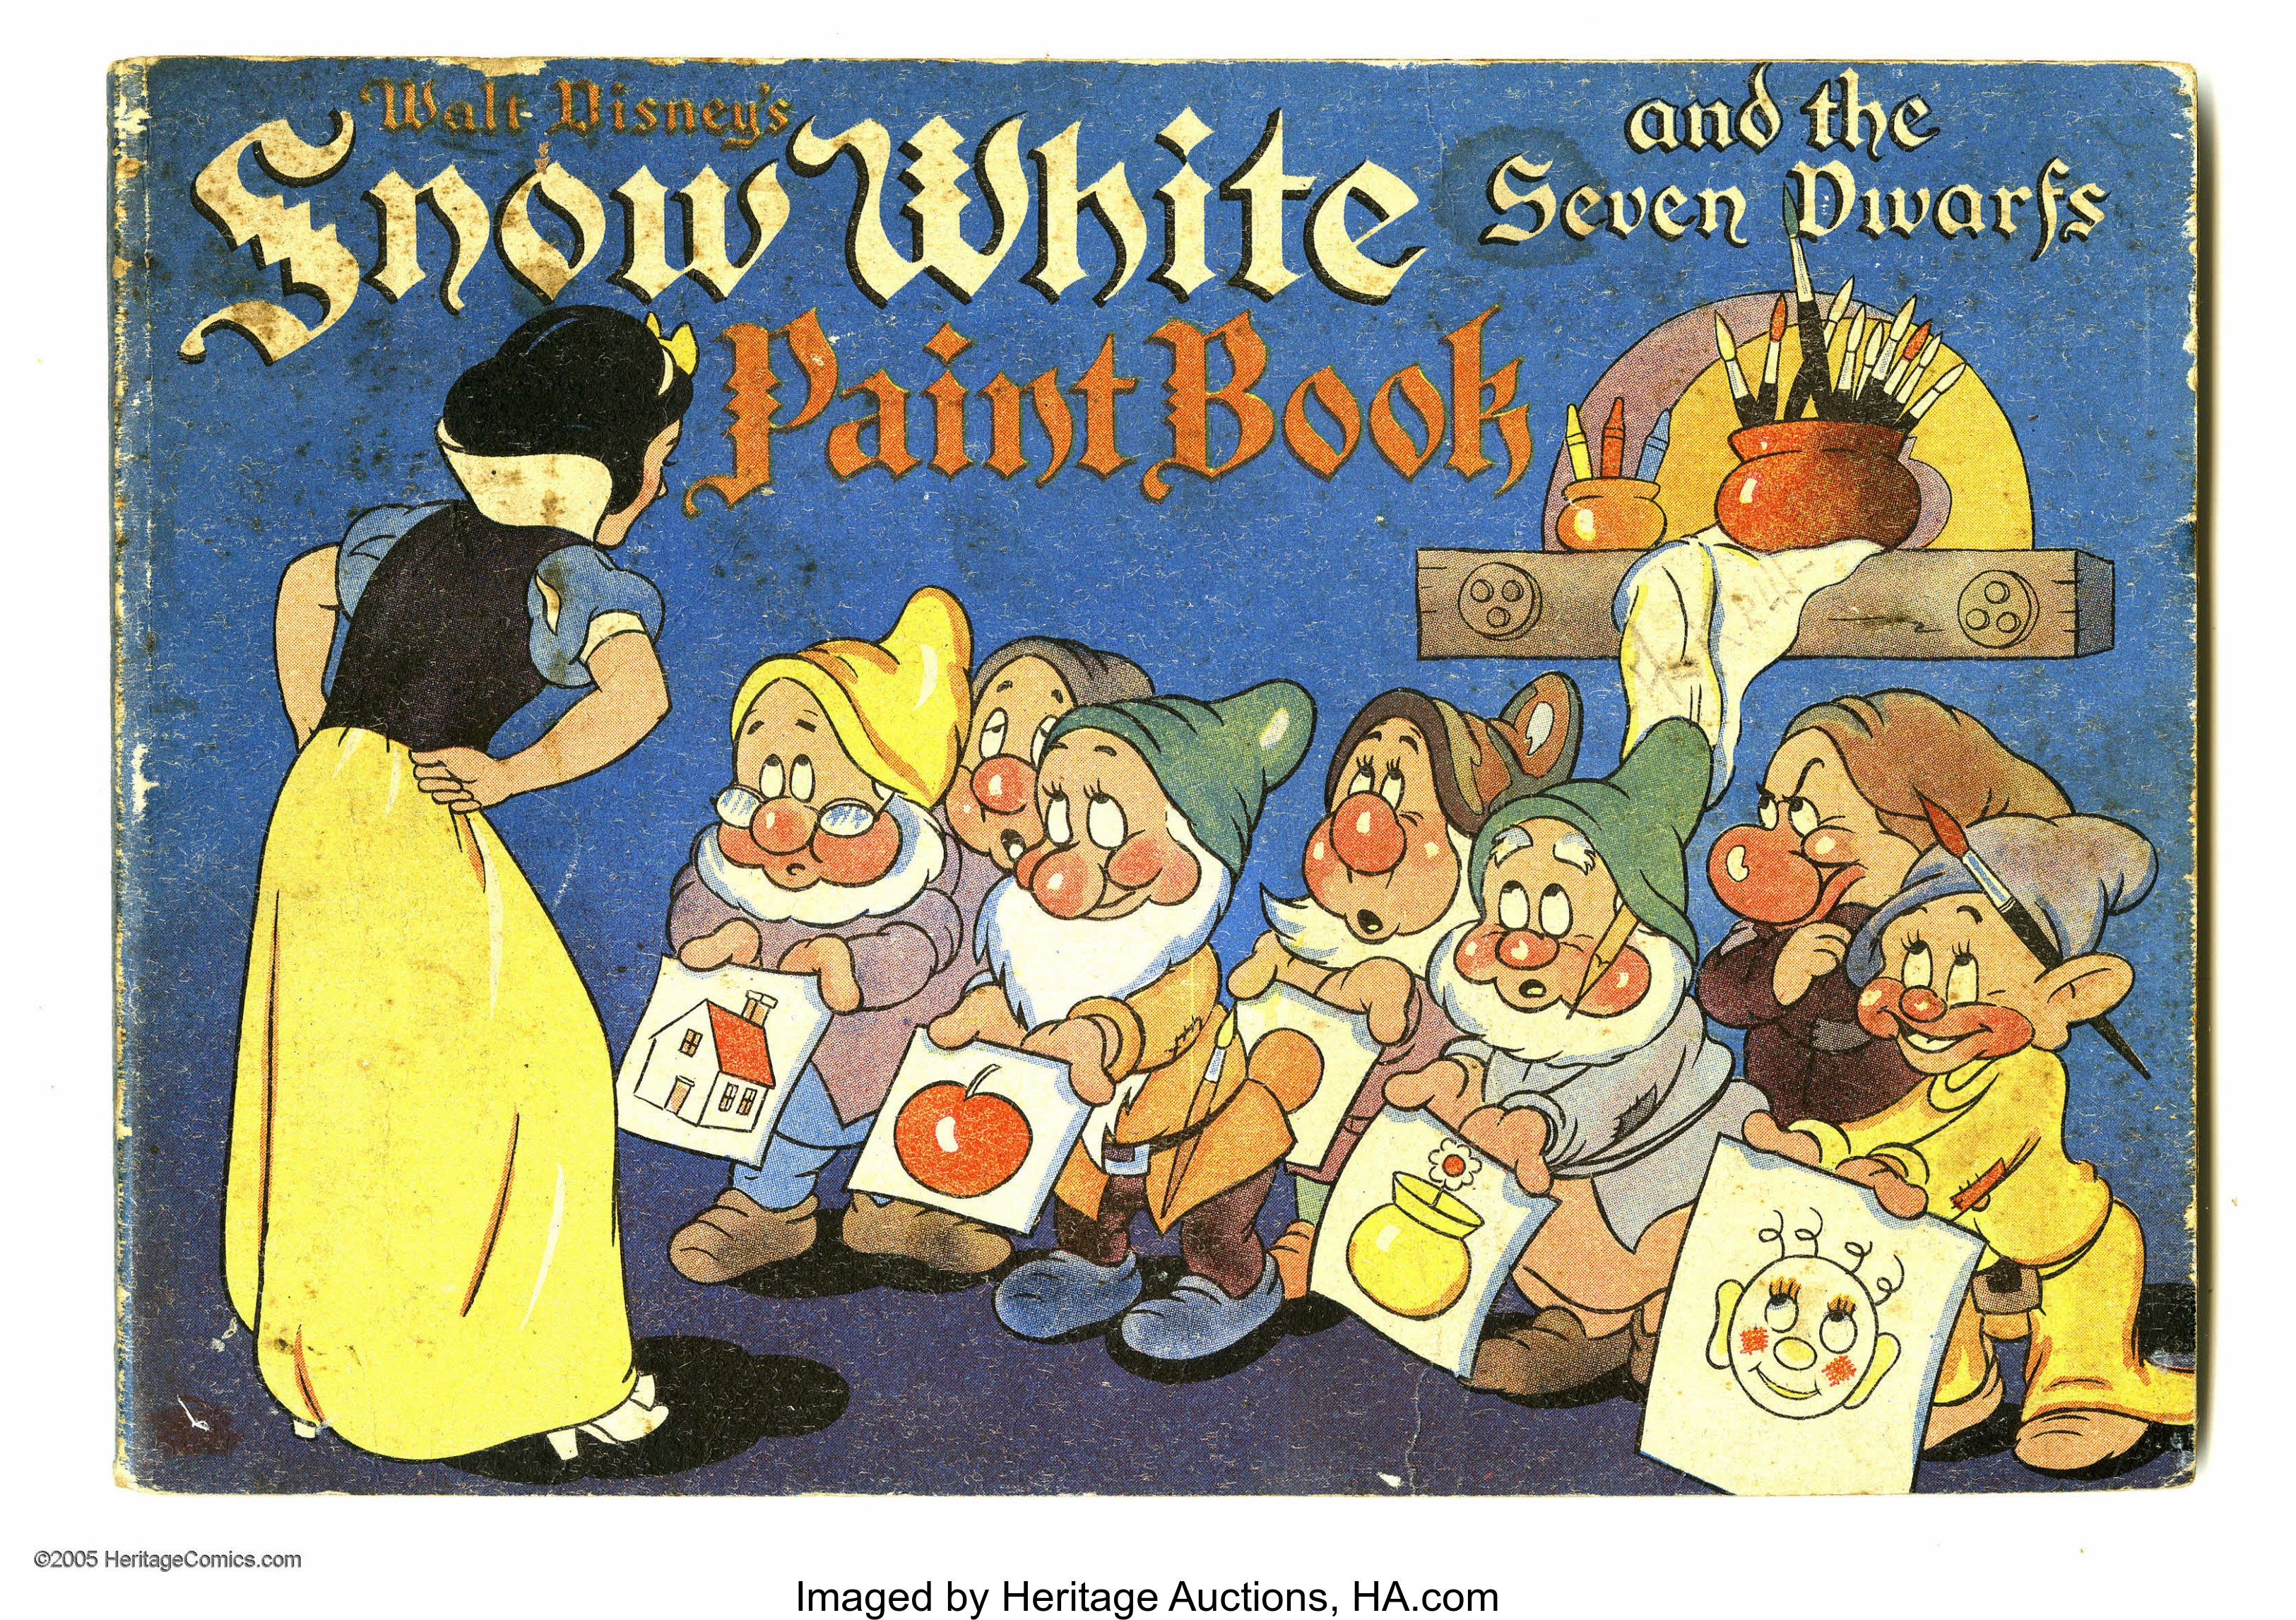 Snow White And The Seven Dwarfs Paint Book Whitman 1938 Lot 16665 Heritage Auctions